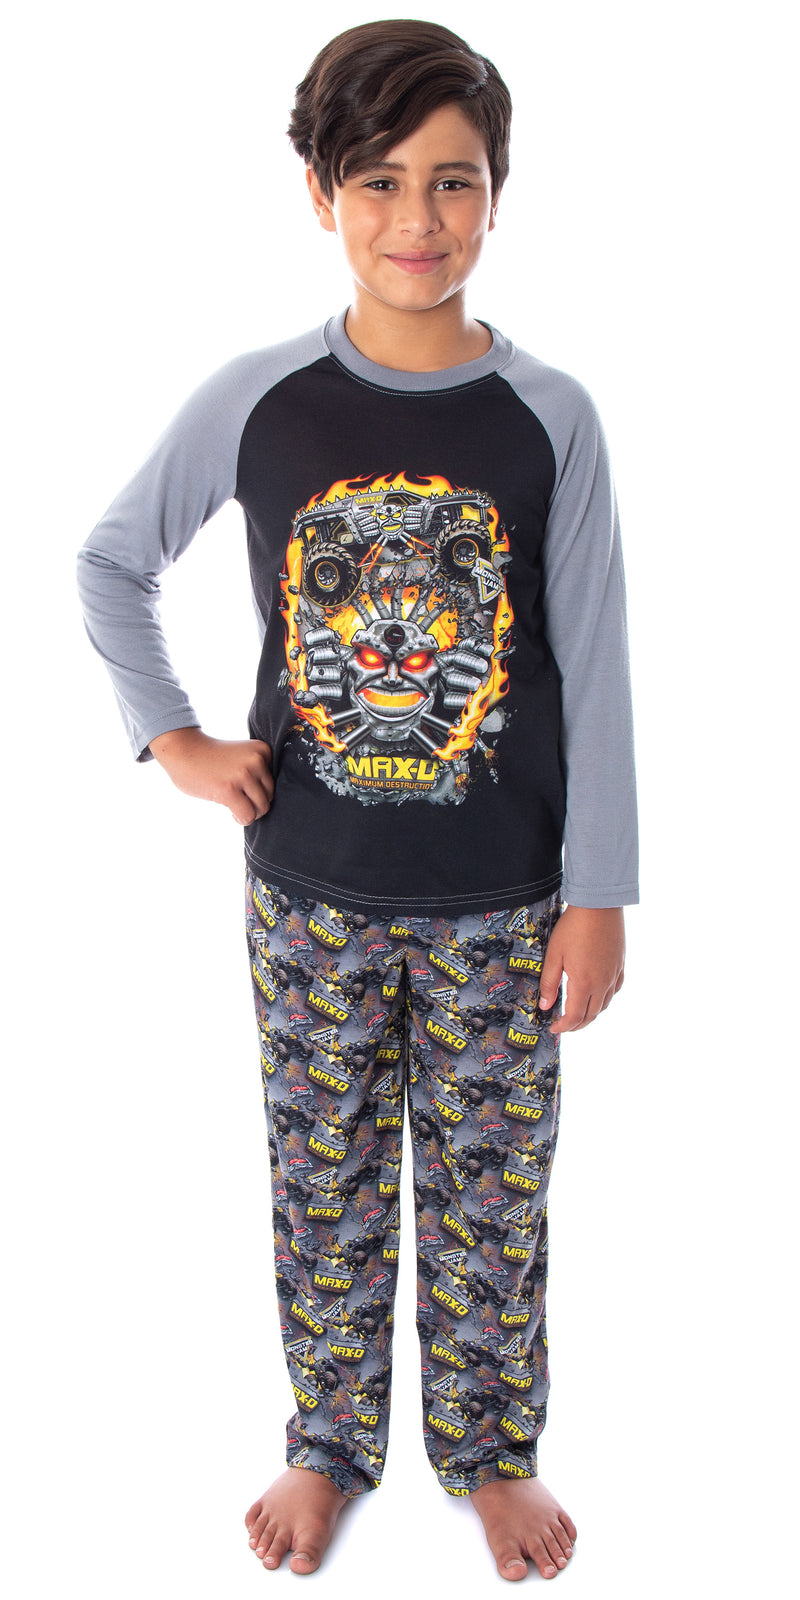 Monster Jam Trucks Pajama Sleep Set 2 PC Boys' MAX-D Maximum Destruction